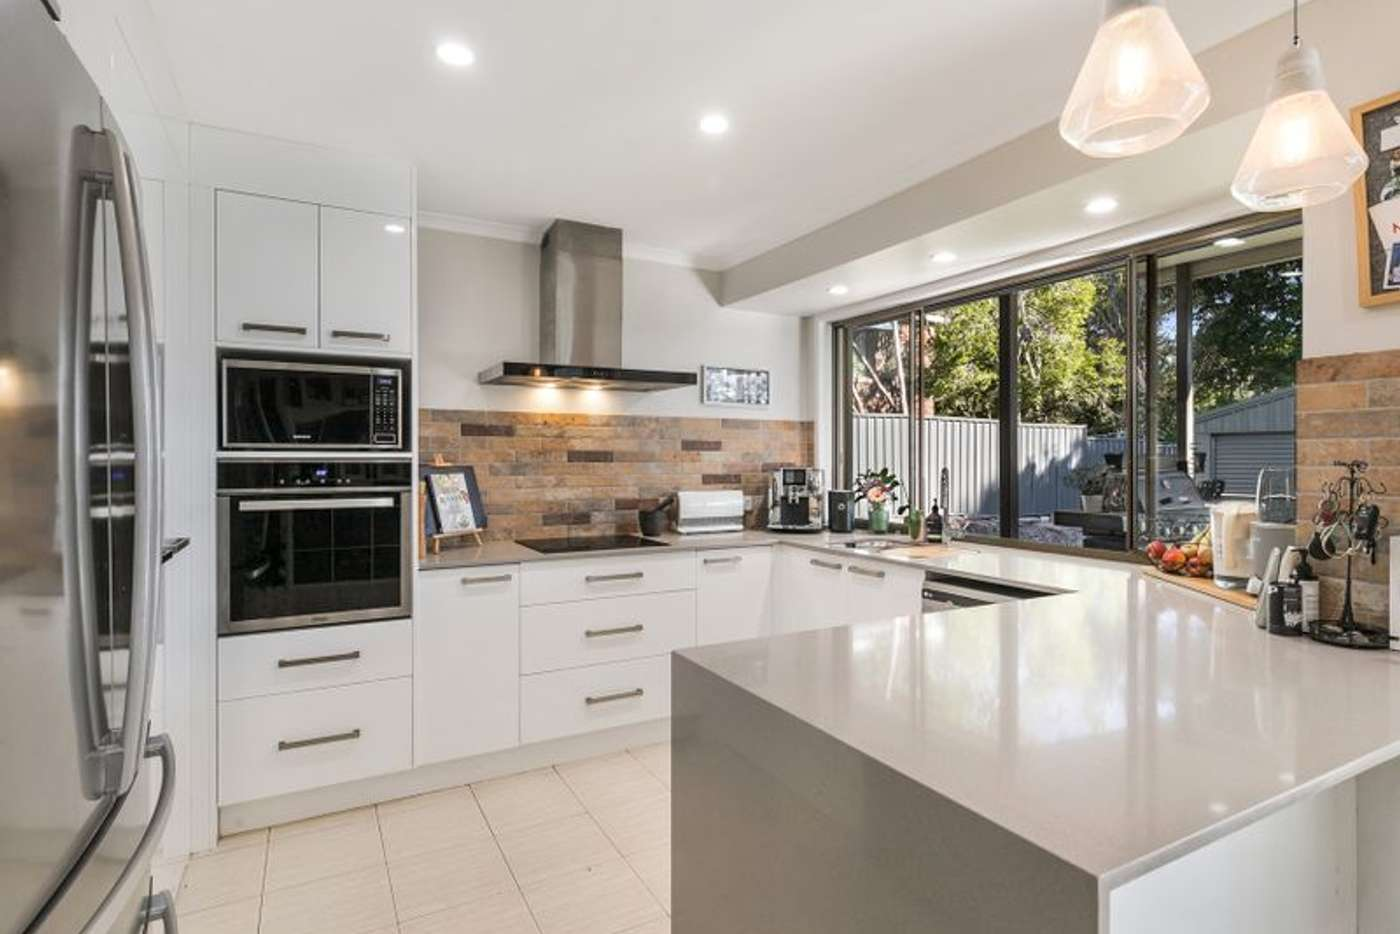 Main view of Homely house listing, 4 Hovea Place, Bellbowrie QLD 4070